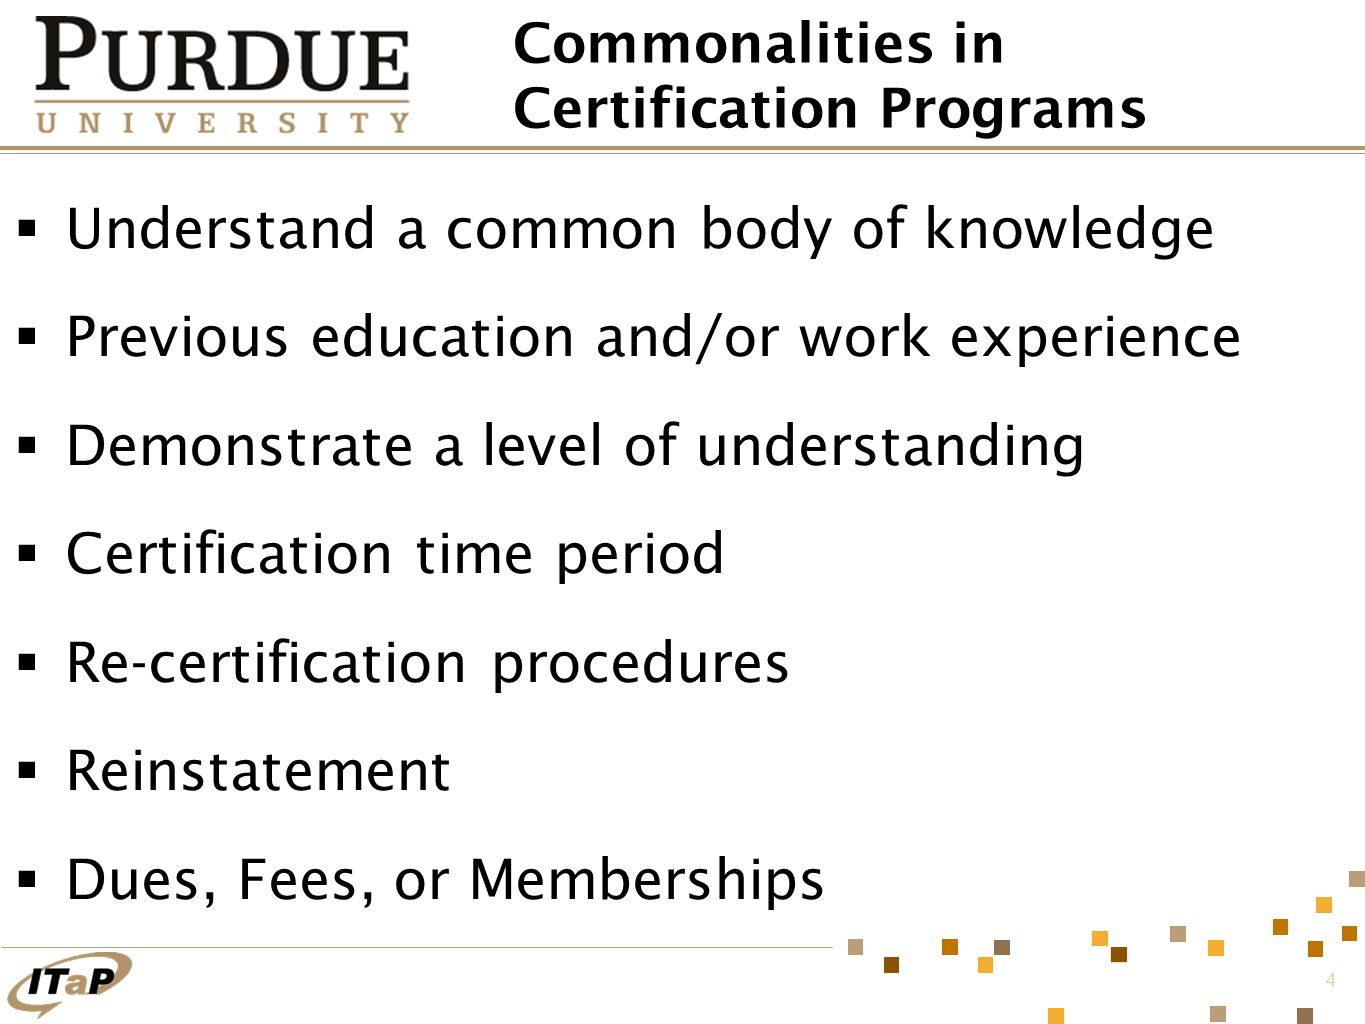 5 Professional Certification  Body of Knowledge encompasses the majority of the field  Managed by a non-profit organization  Exam requires NDA  Requires commitment to code of ethics  Requires endorsement and may involve an audit  Examples: (ISC) 2 CISSP ISACA CISA and CISM